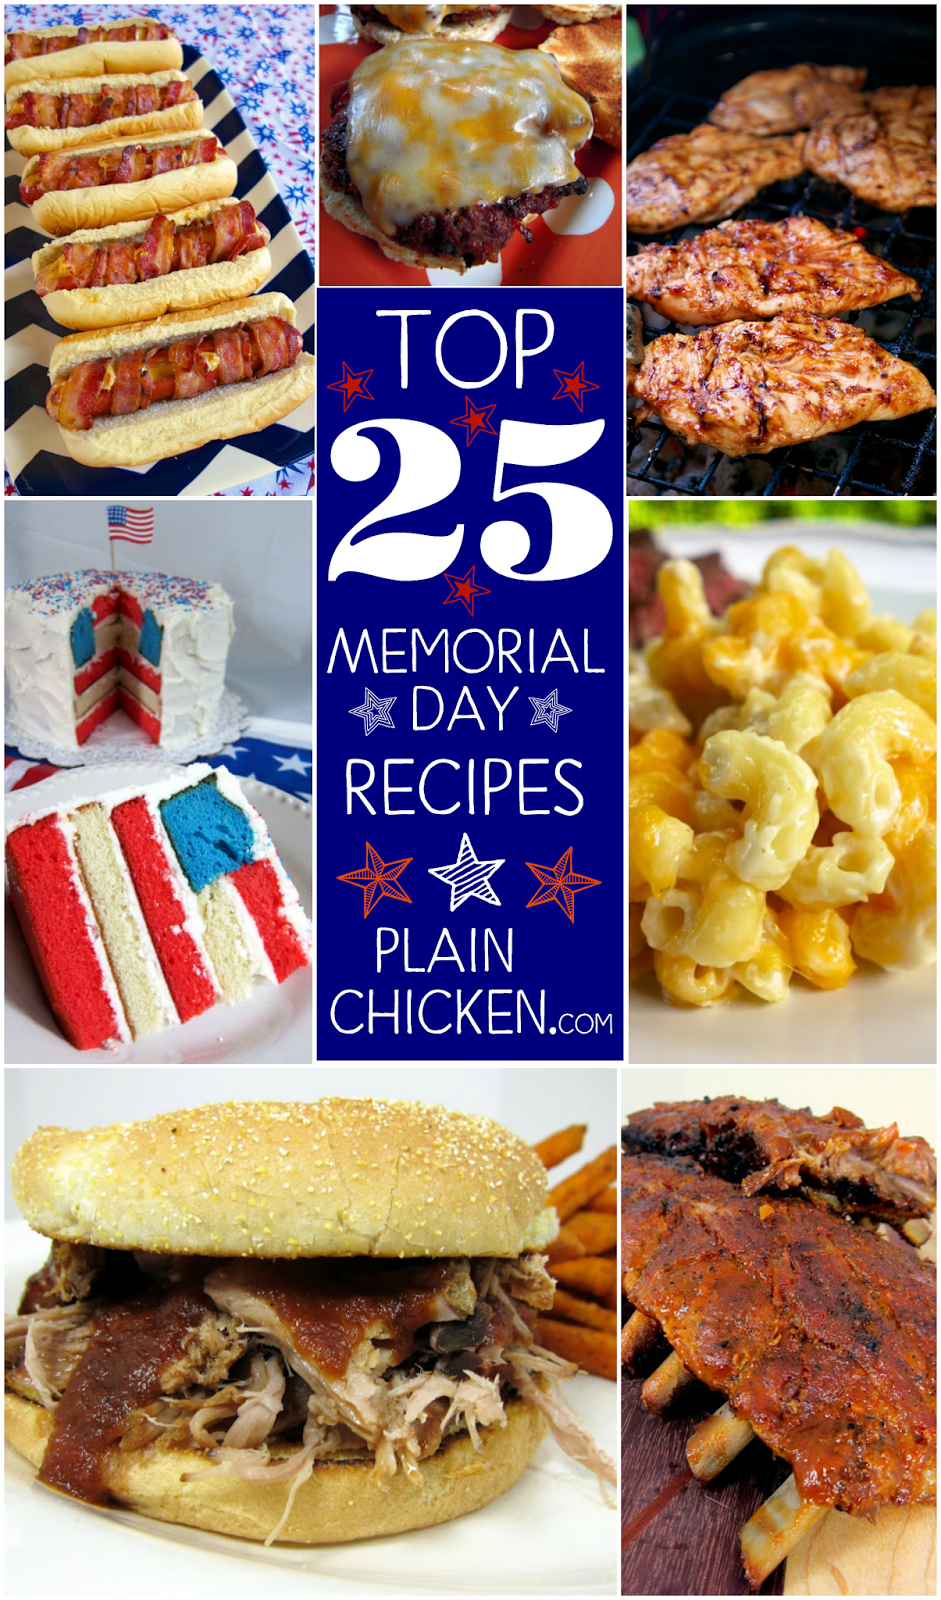 Best 25 Funeral Homes Ideas On Pinterest: Top 25 Memorial Day Recipes